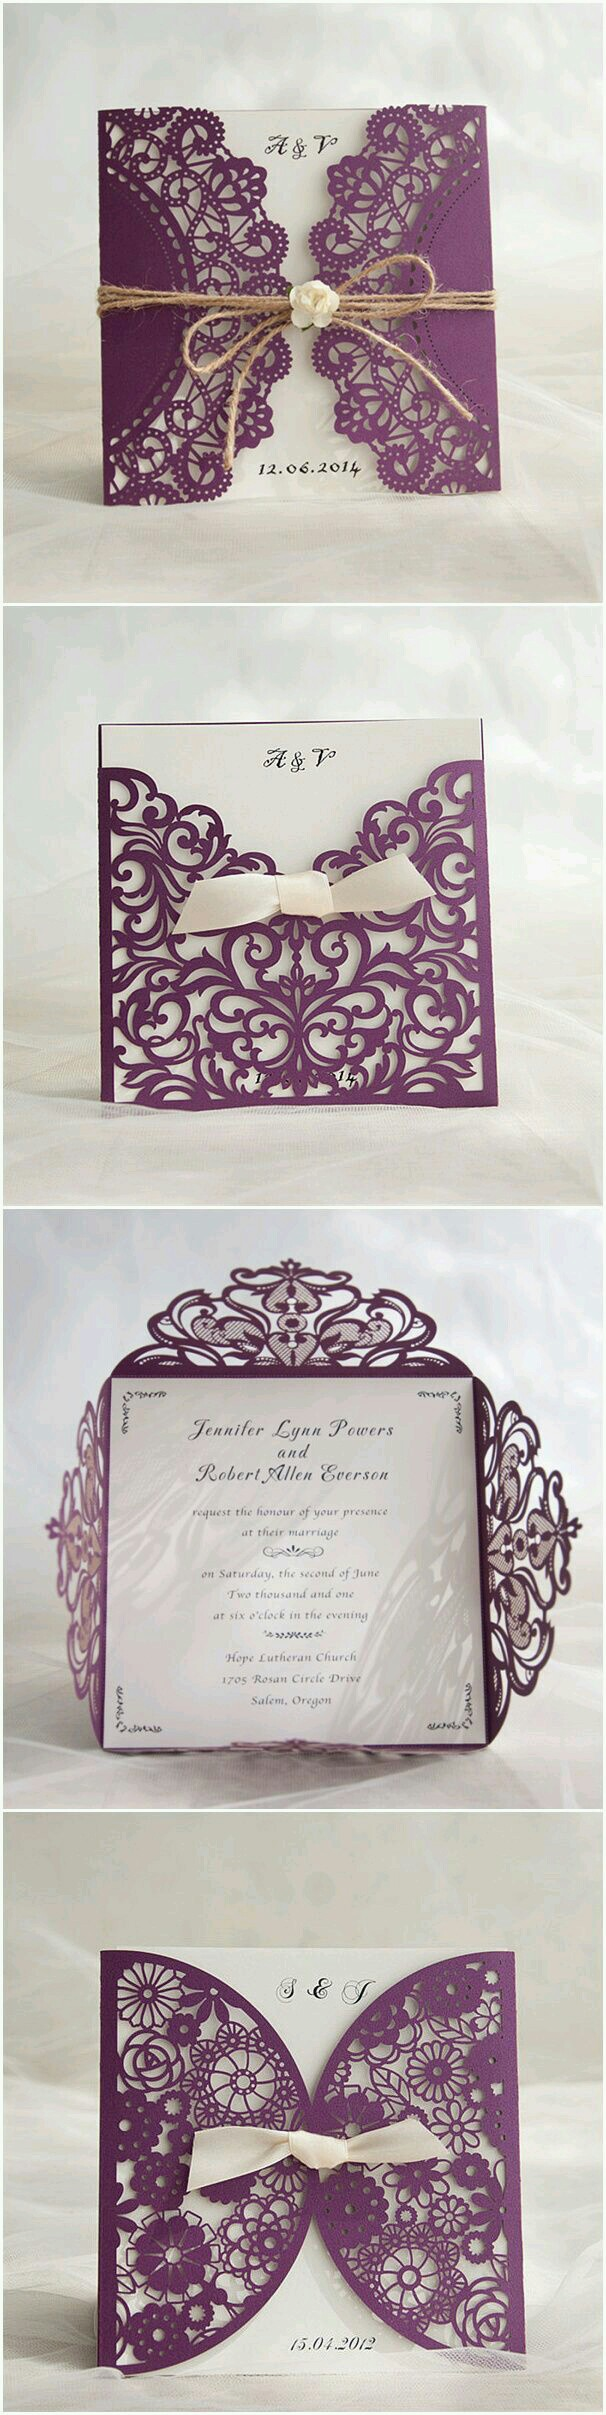 Pin by jessica lopez on my wedding pinterest wedding and weddings purple themed chic rustic diy laser cut wedding invitations feel free to delete just looking at possible diy invitations inspirations for you monicamarmolfo Image collections